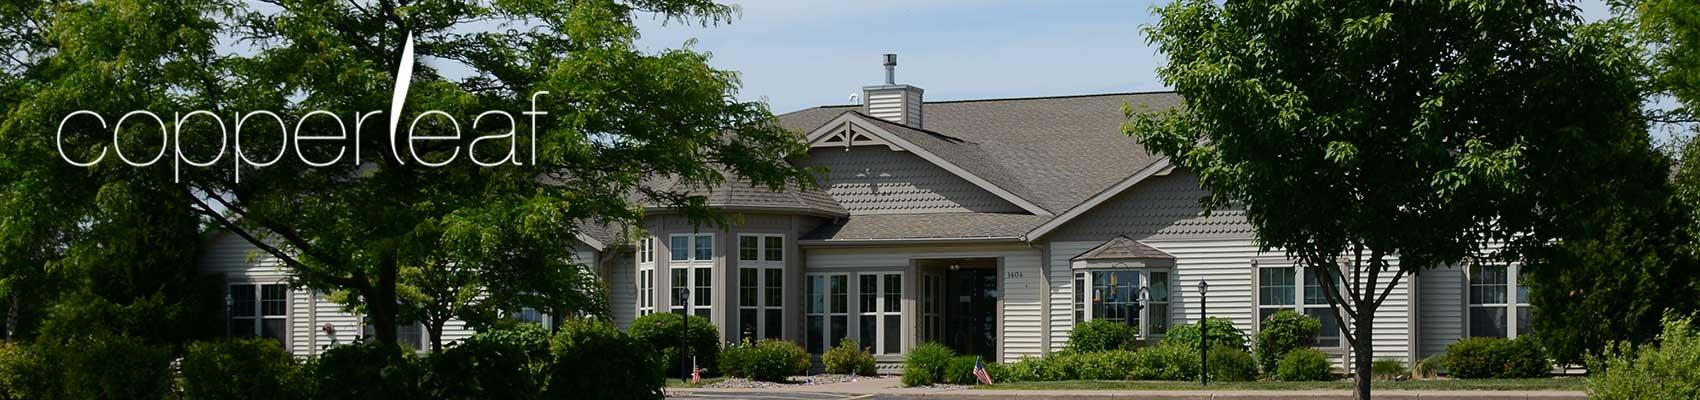 Assisted Living assisted living facilities Laudolff Beach Wisconsin Fond du Lac County